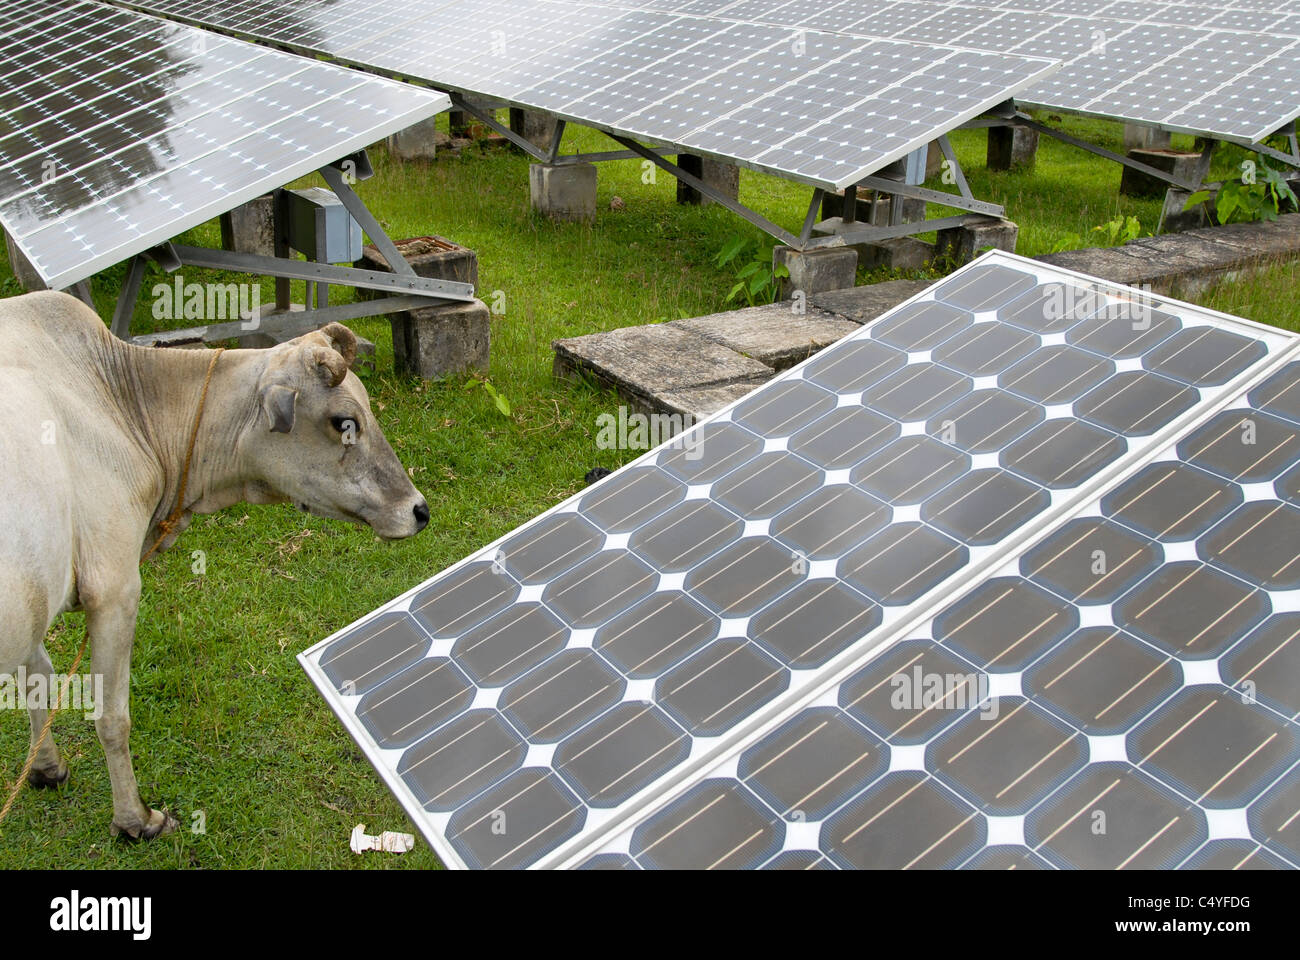 INDIA West Bengal , Sagar Island in Sundarban the delta of Ganga river , solar power station as off-grid system - Stock Image